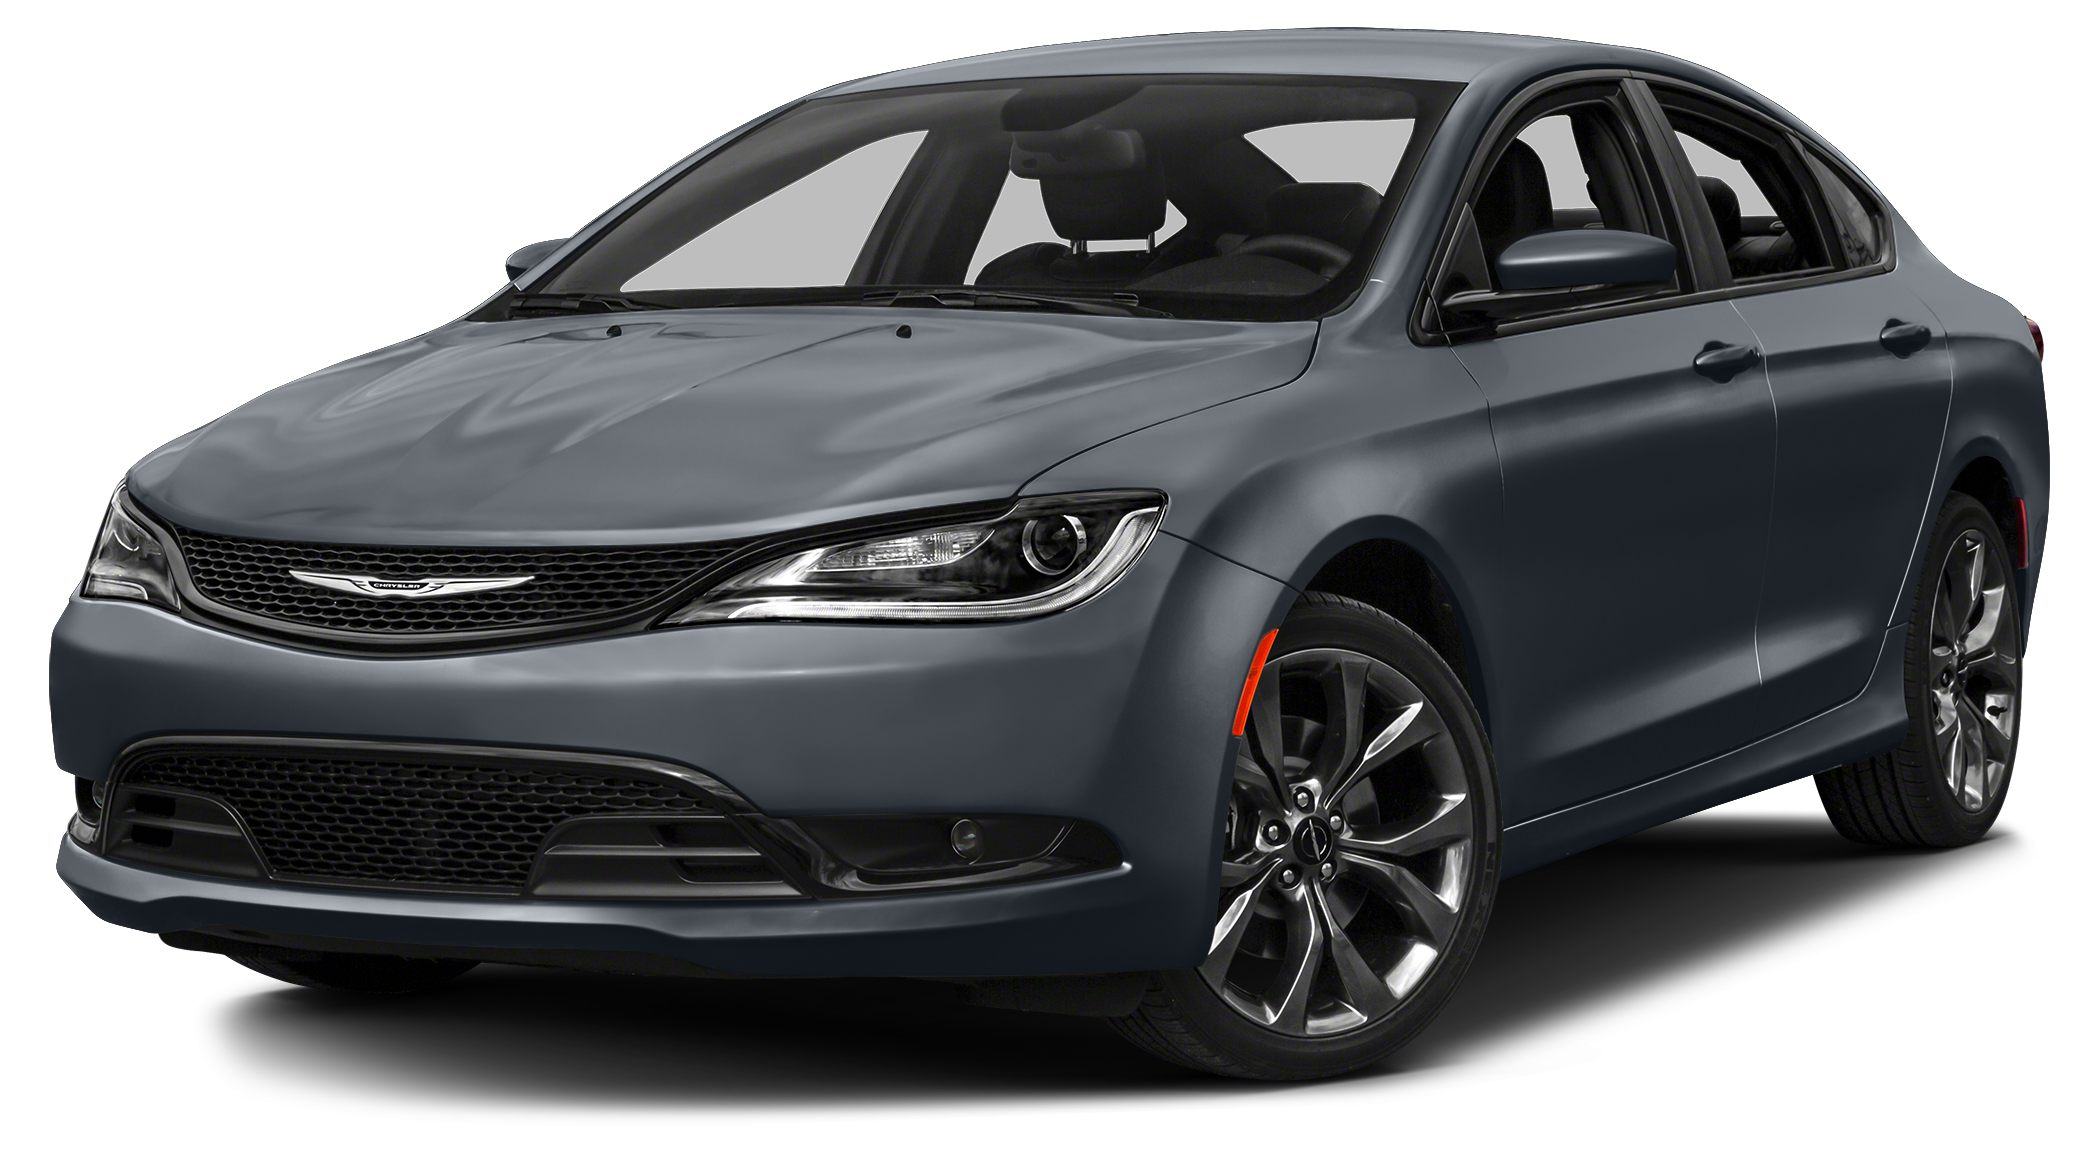 2015 Chrysler 200 S Cloth Gasoline STOP Read this Do you want it all especially wonderful gas